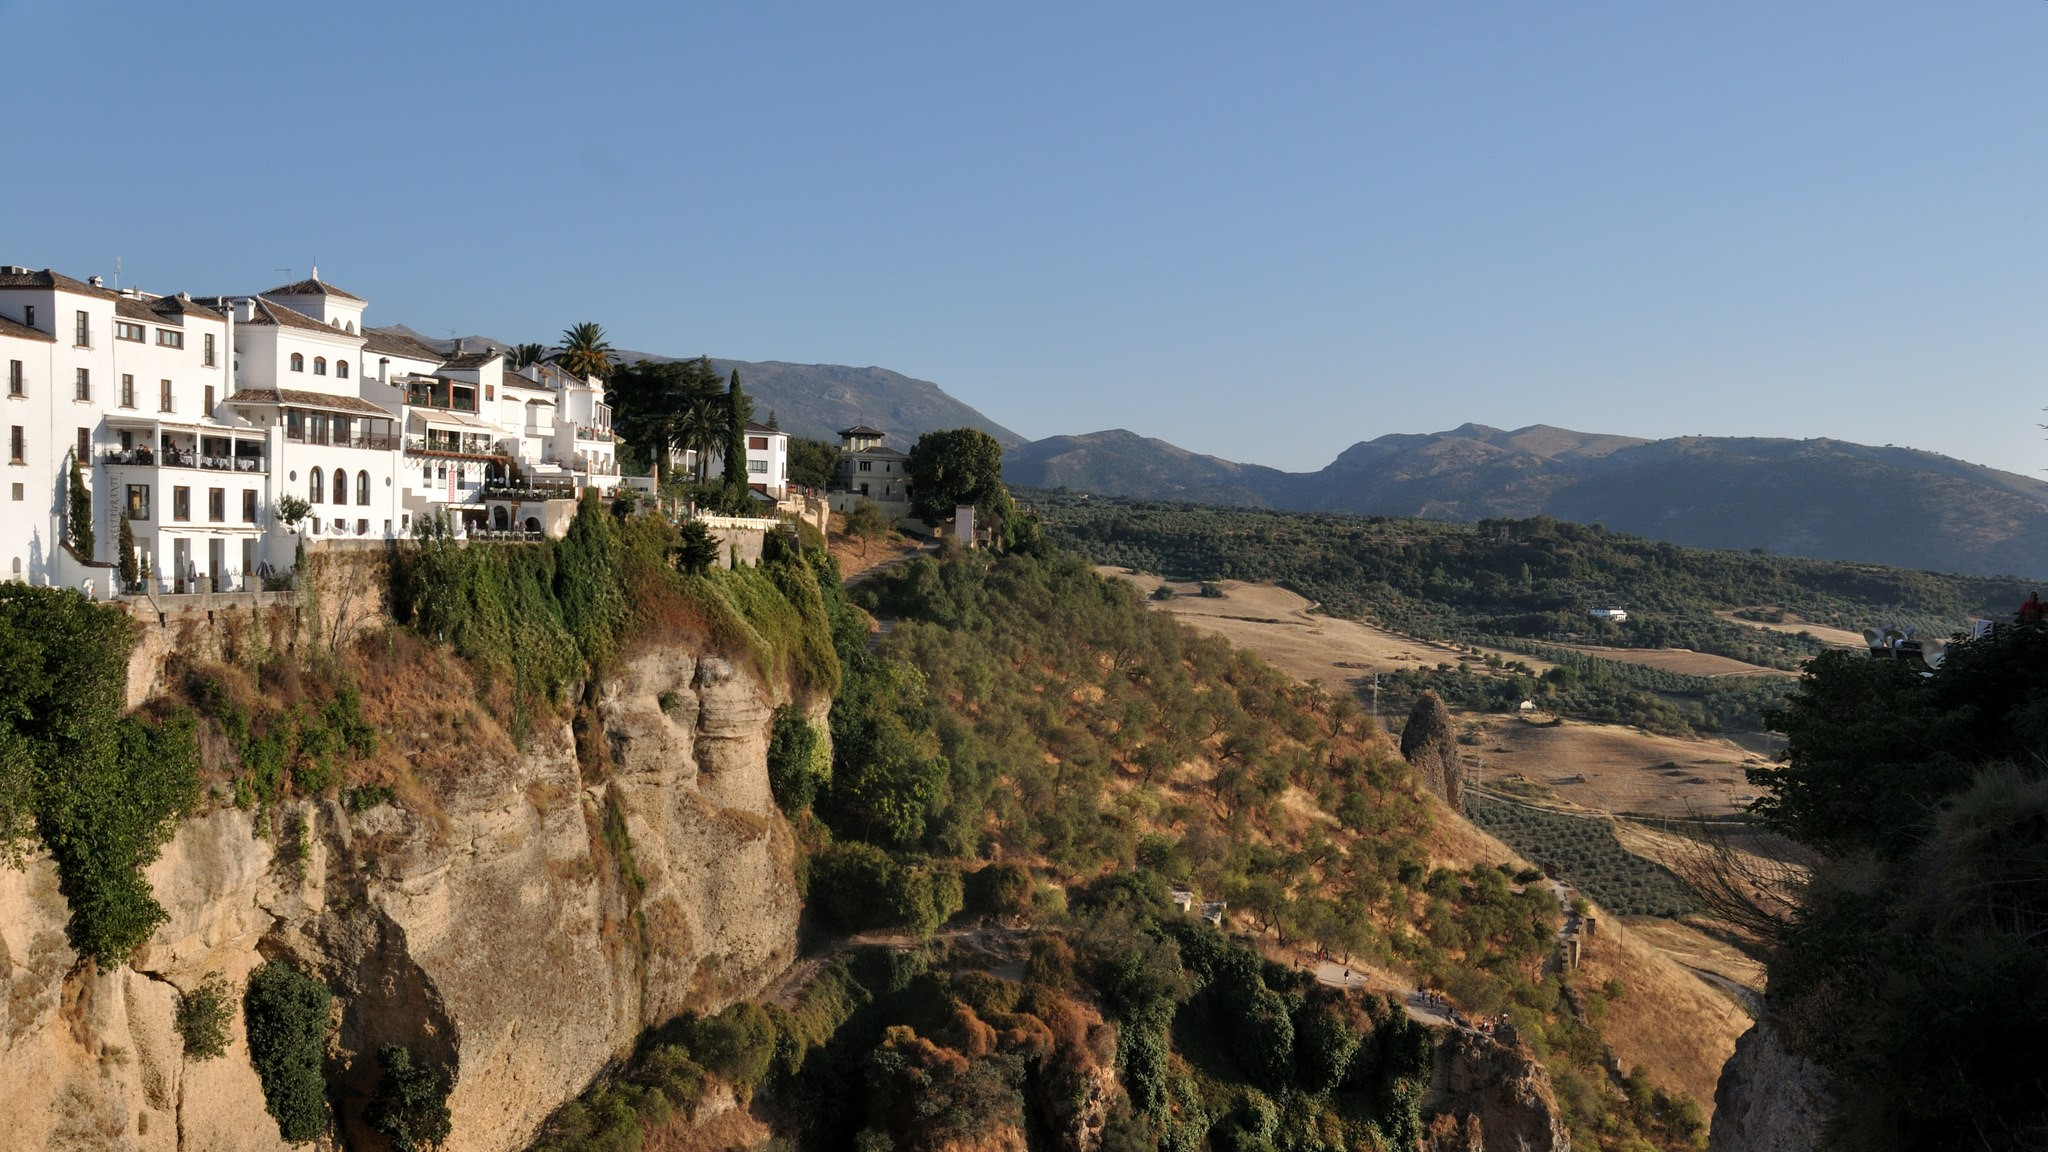 Camino De Ronda Granada Wikipedia Holidays In Spain Tours And Hotels Eatour Specialist